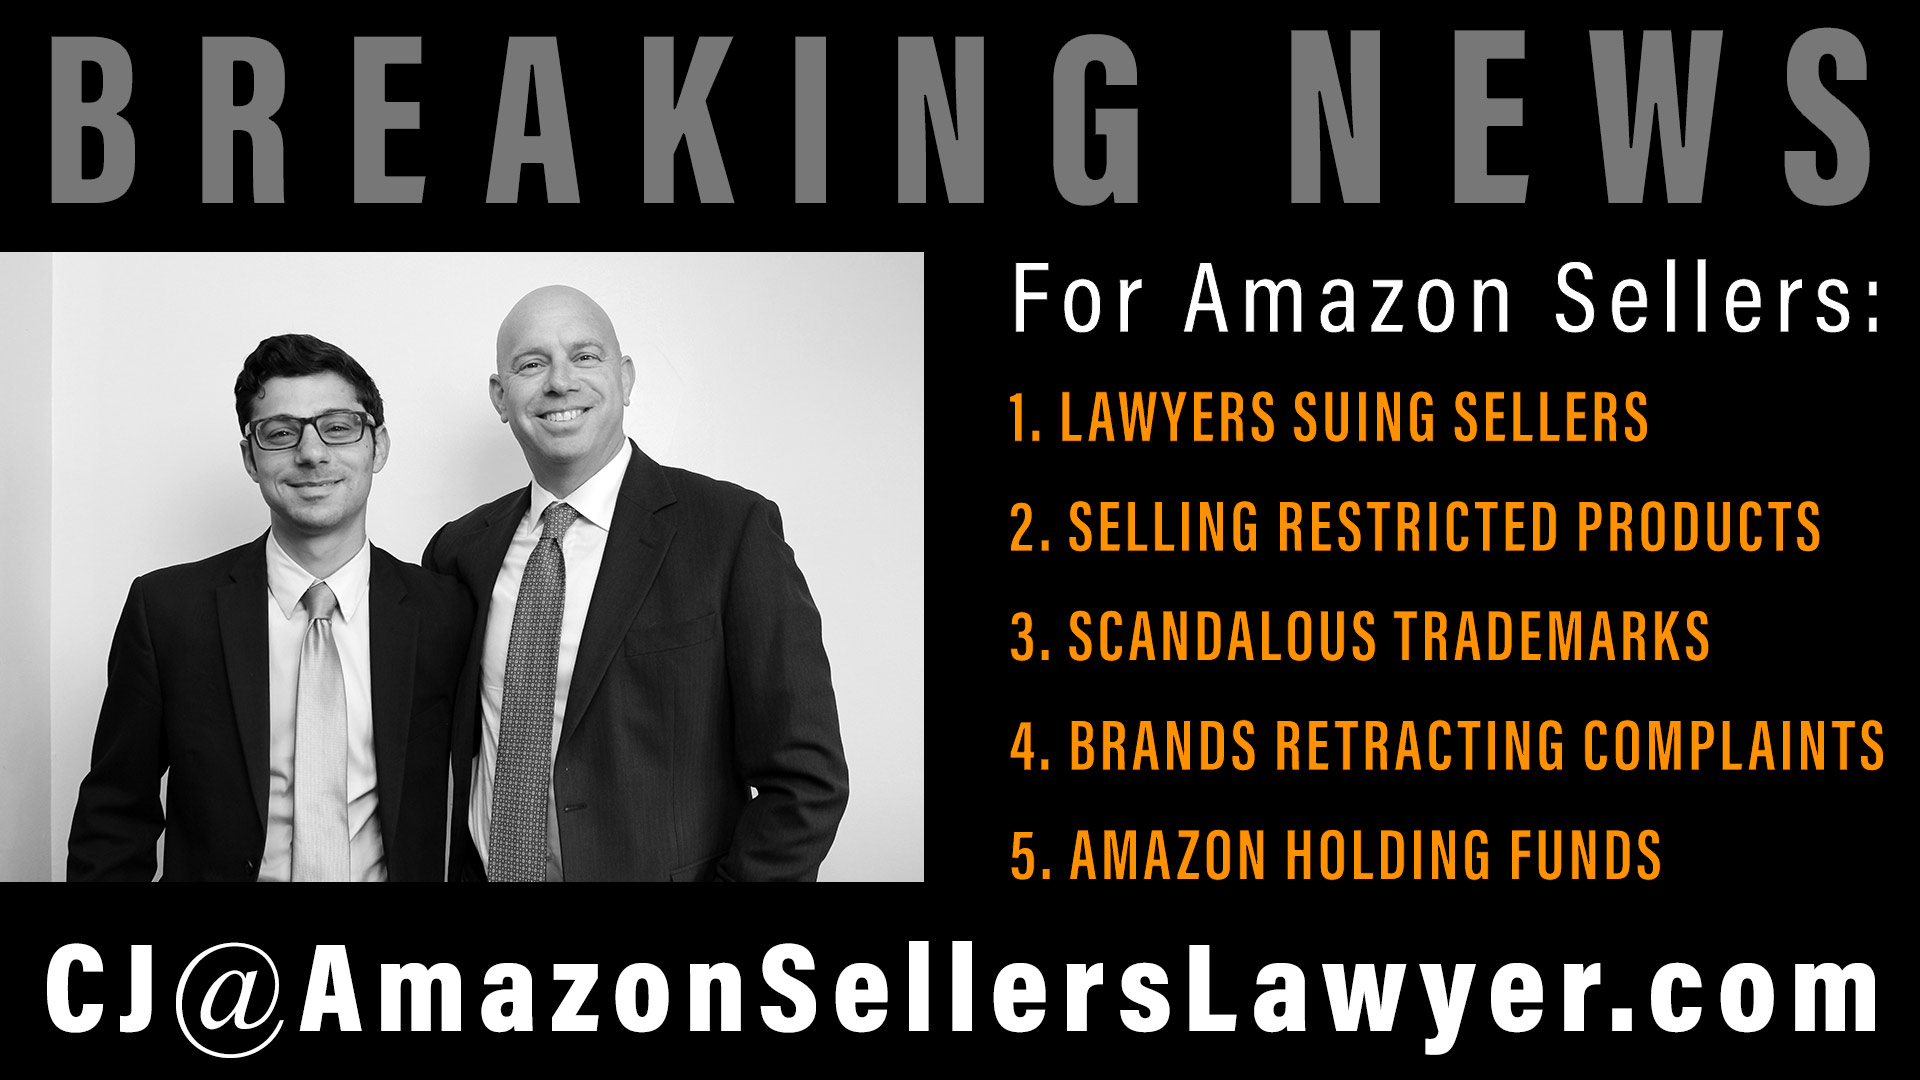 Amazon Sellers News - LAWYERS SUING SELLERS - SELLING RESTRICTED PRODUCTS - SCANDALOUS TRADEMARKS - BRANDS RETRACTING COMPLAINTS - AMAZON HOLDING FUNDS